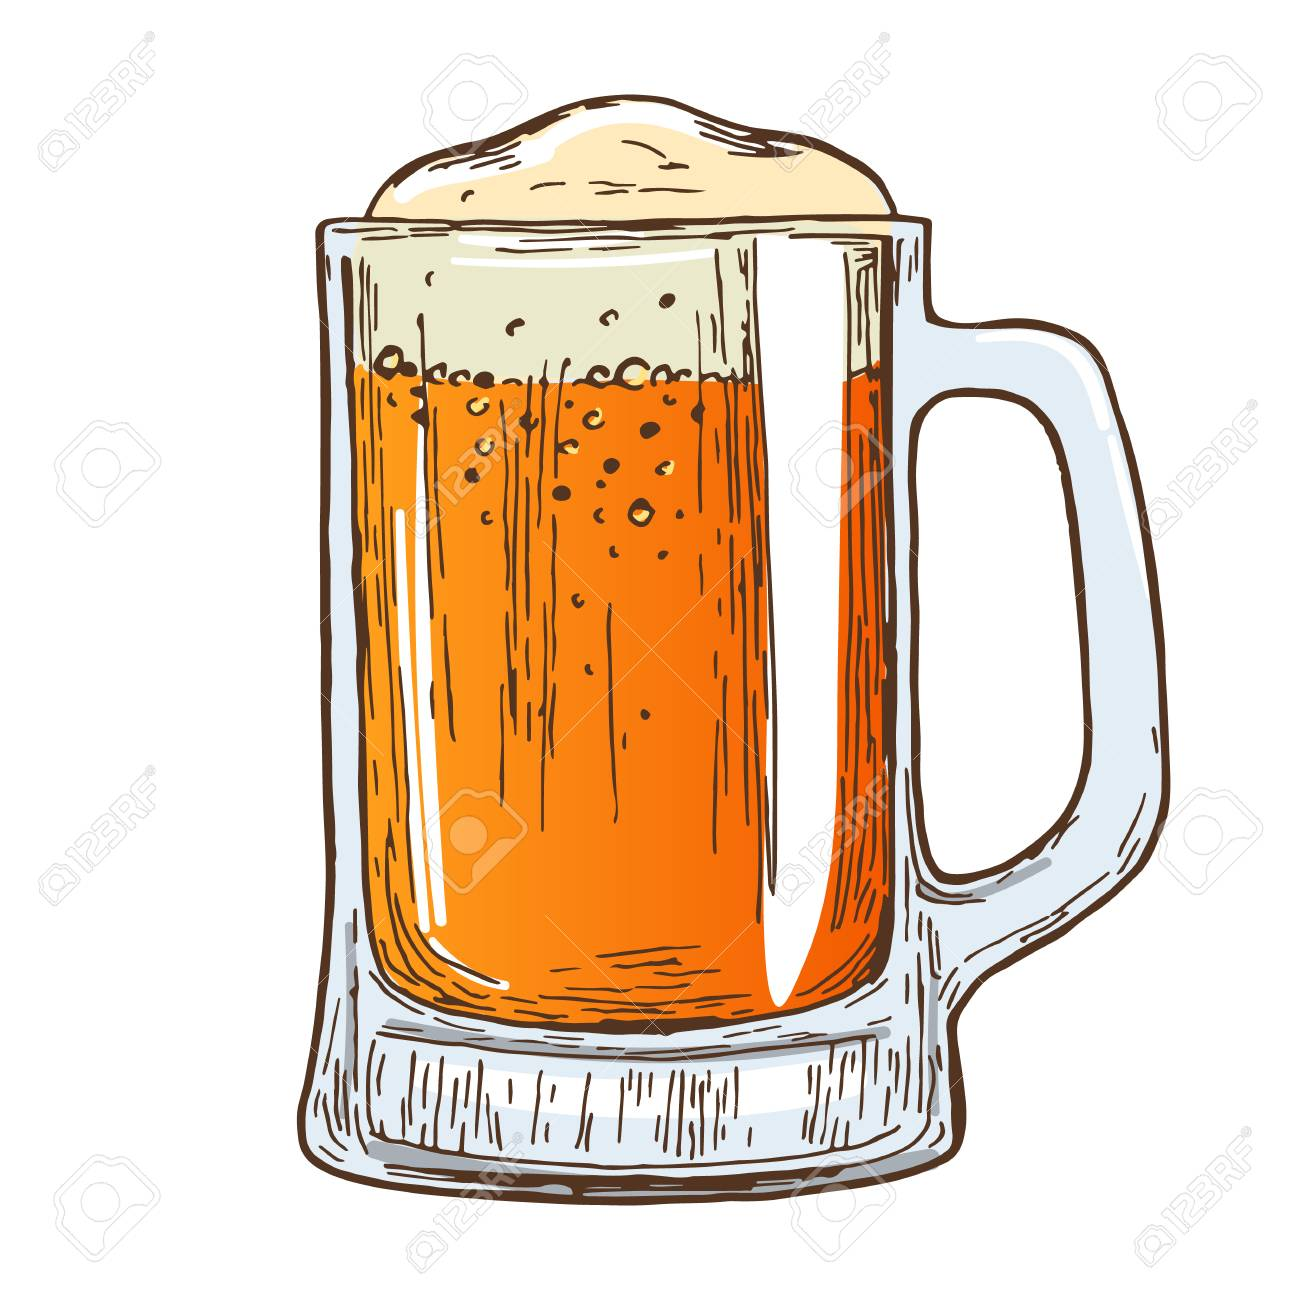 1300x1300 Beer Mug On White Background. Colorful Sketch Of Beer Glass